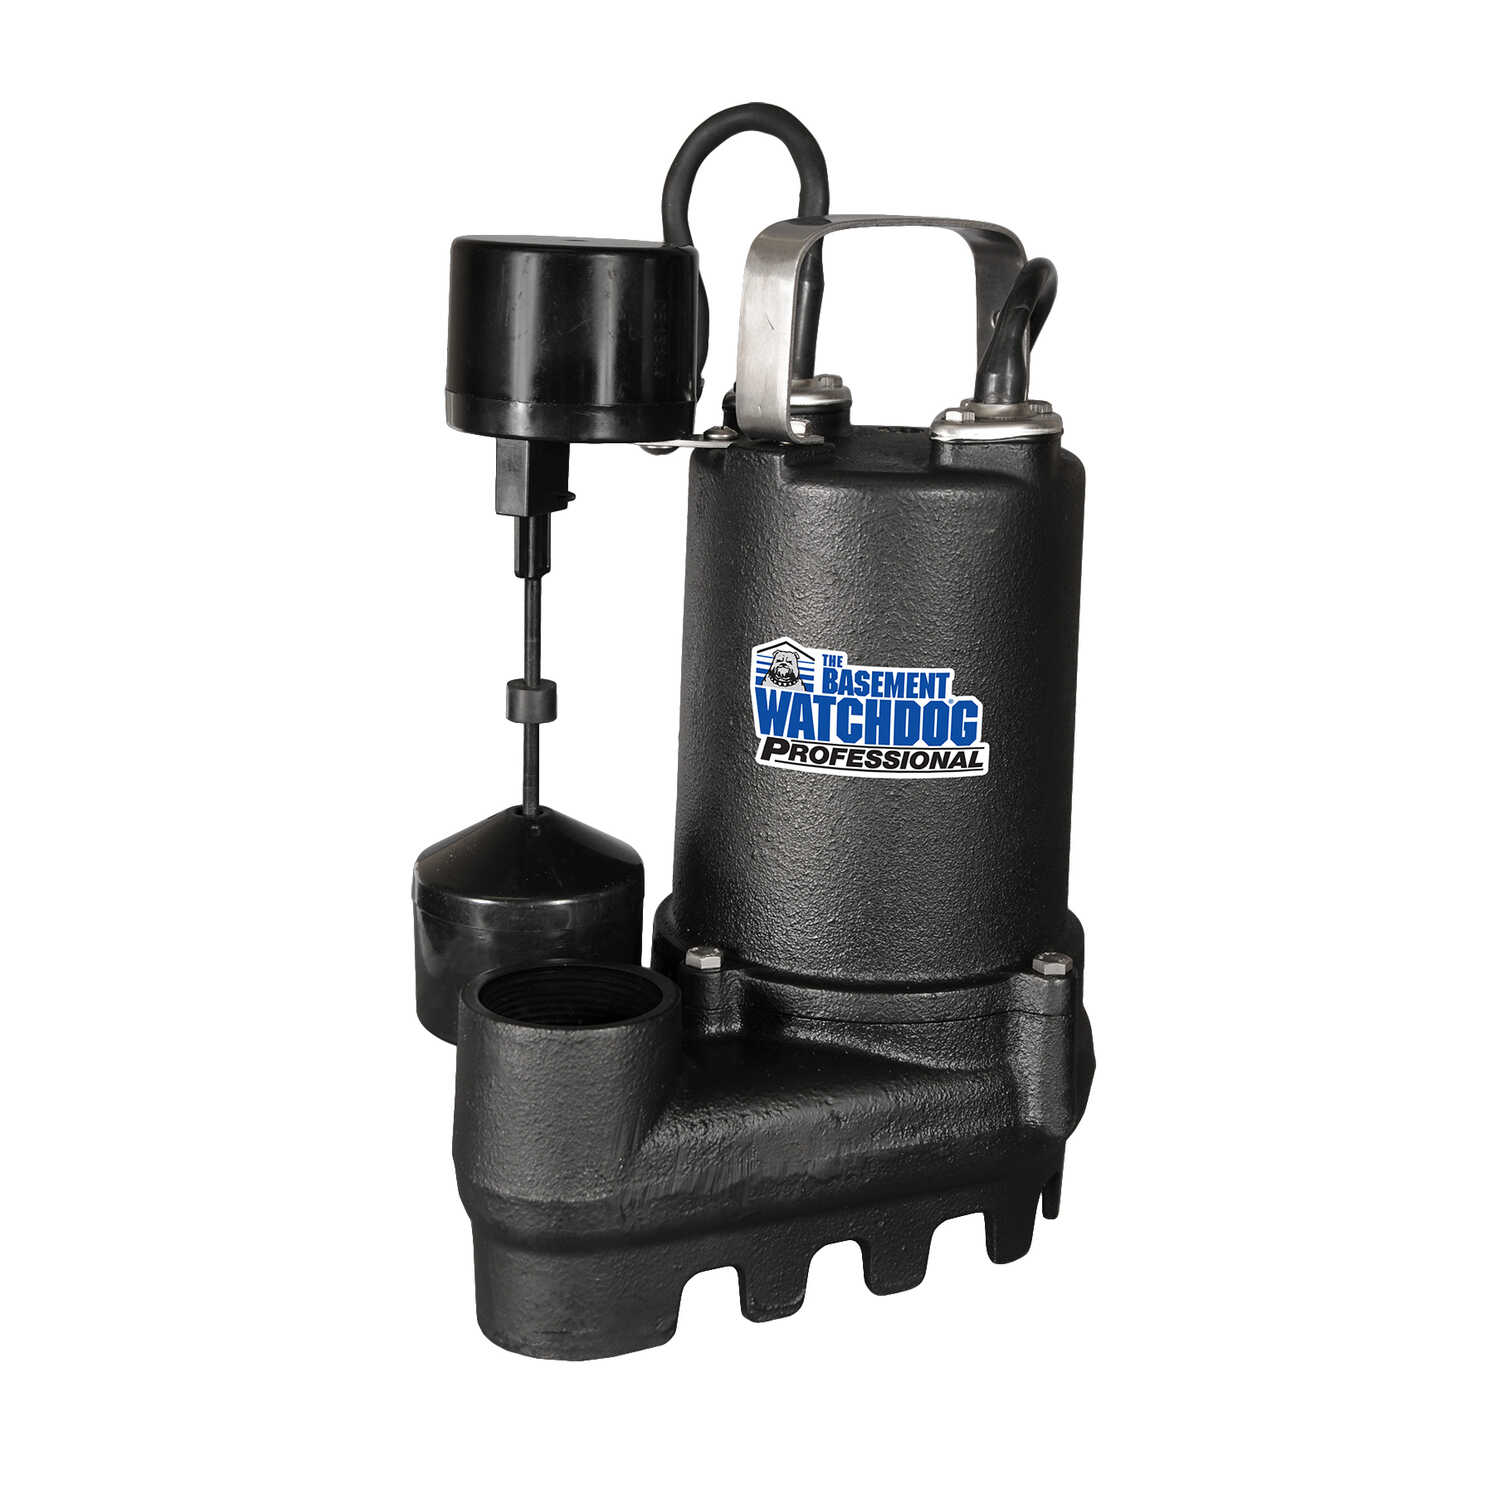 Basement Watchdog  Professional  1/2 hp 4300 gph Cast Iron  Submersible Sump Pump